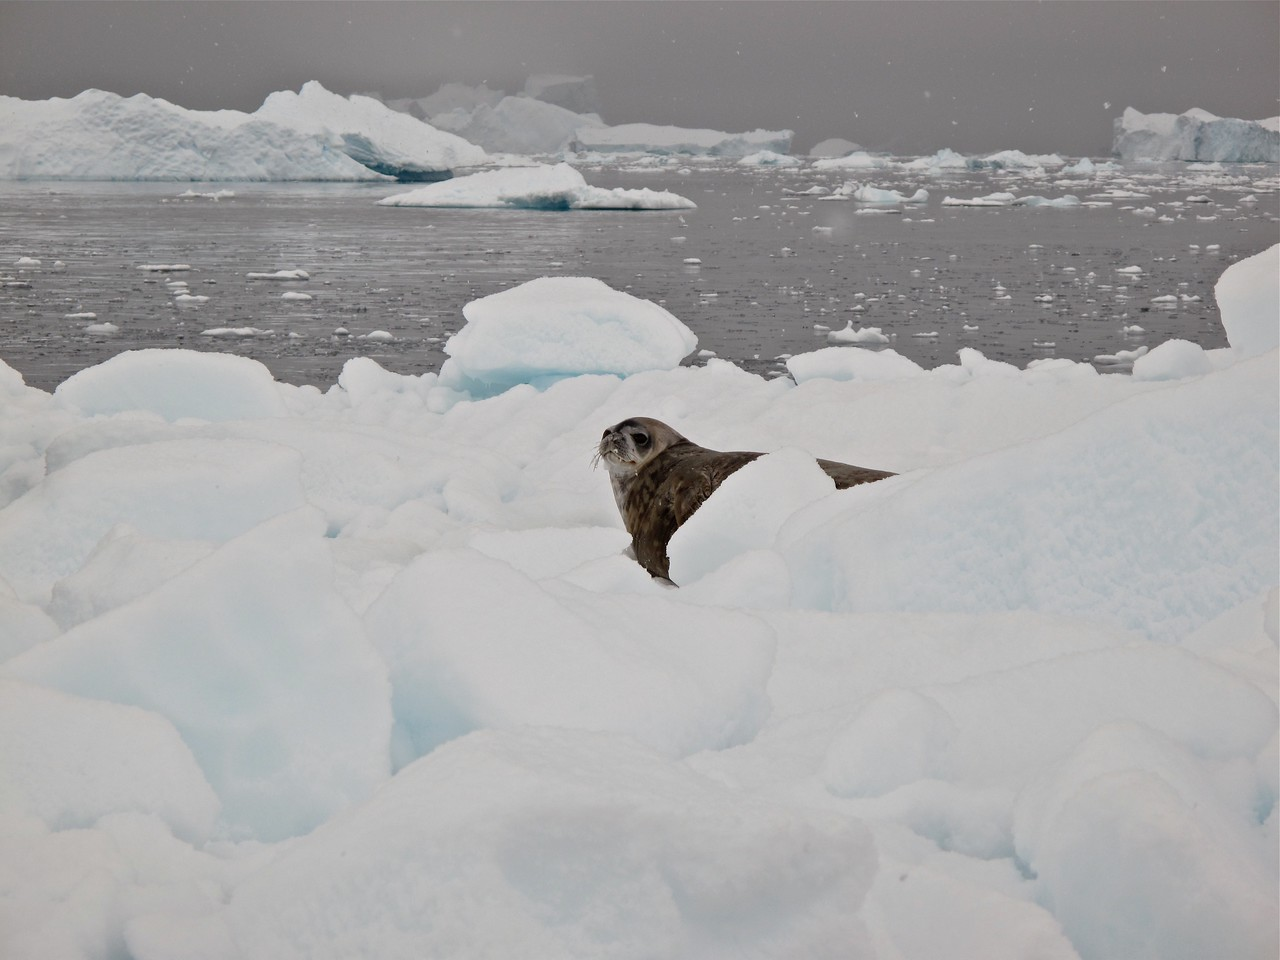 The Weddell seal was named and discovered by a British sealing captain, James Weddell in the 1820s when he was on a sailing expedition within the Weddell sea, also named after James Weddell.